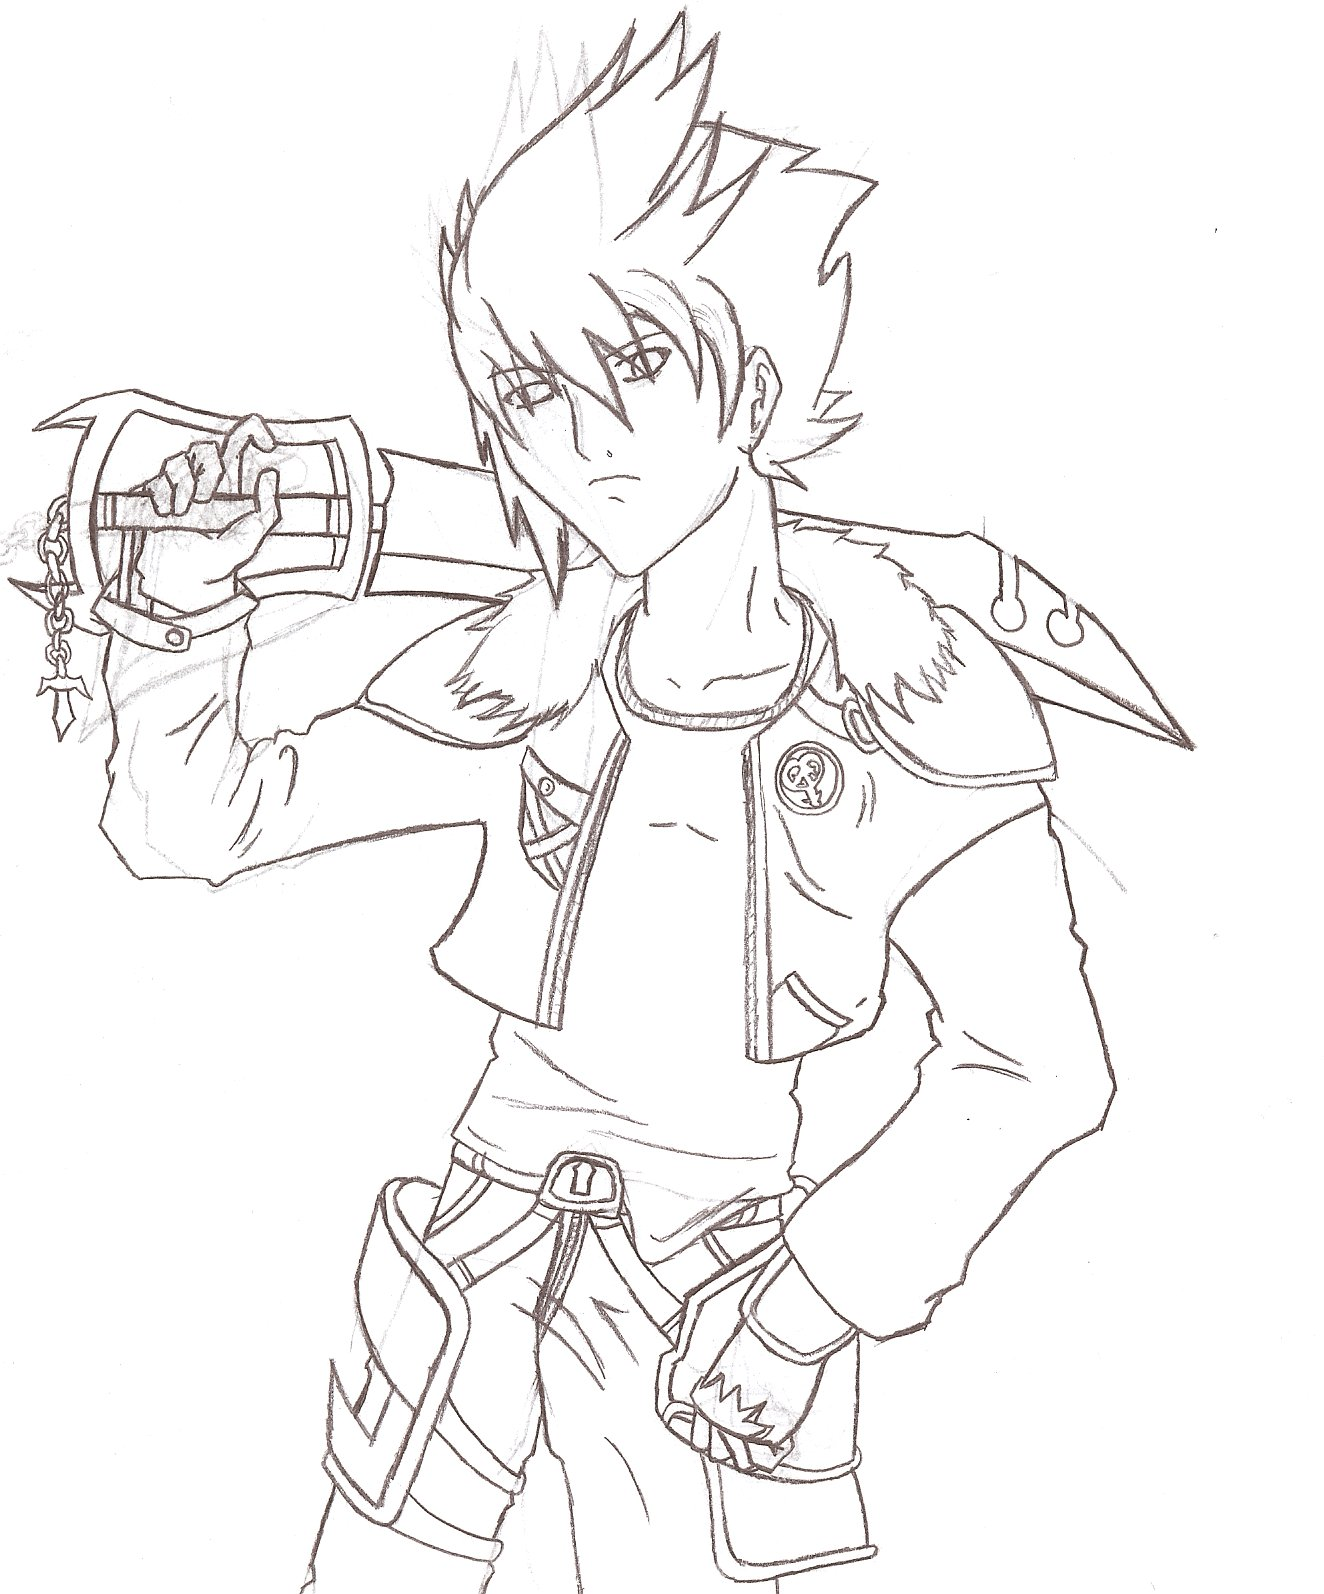 A new Keyblade wielder has entered the fray! by steppingxlxintoxlxdarkness